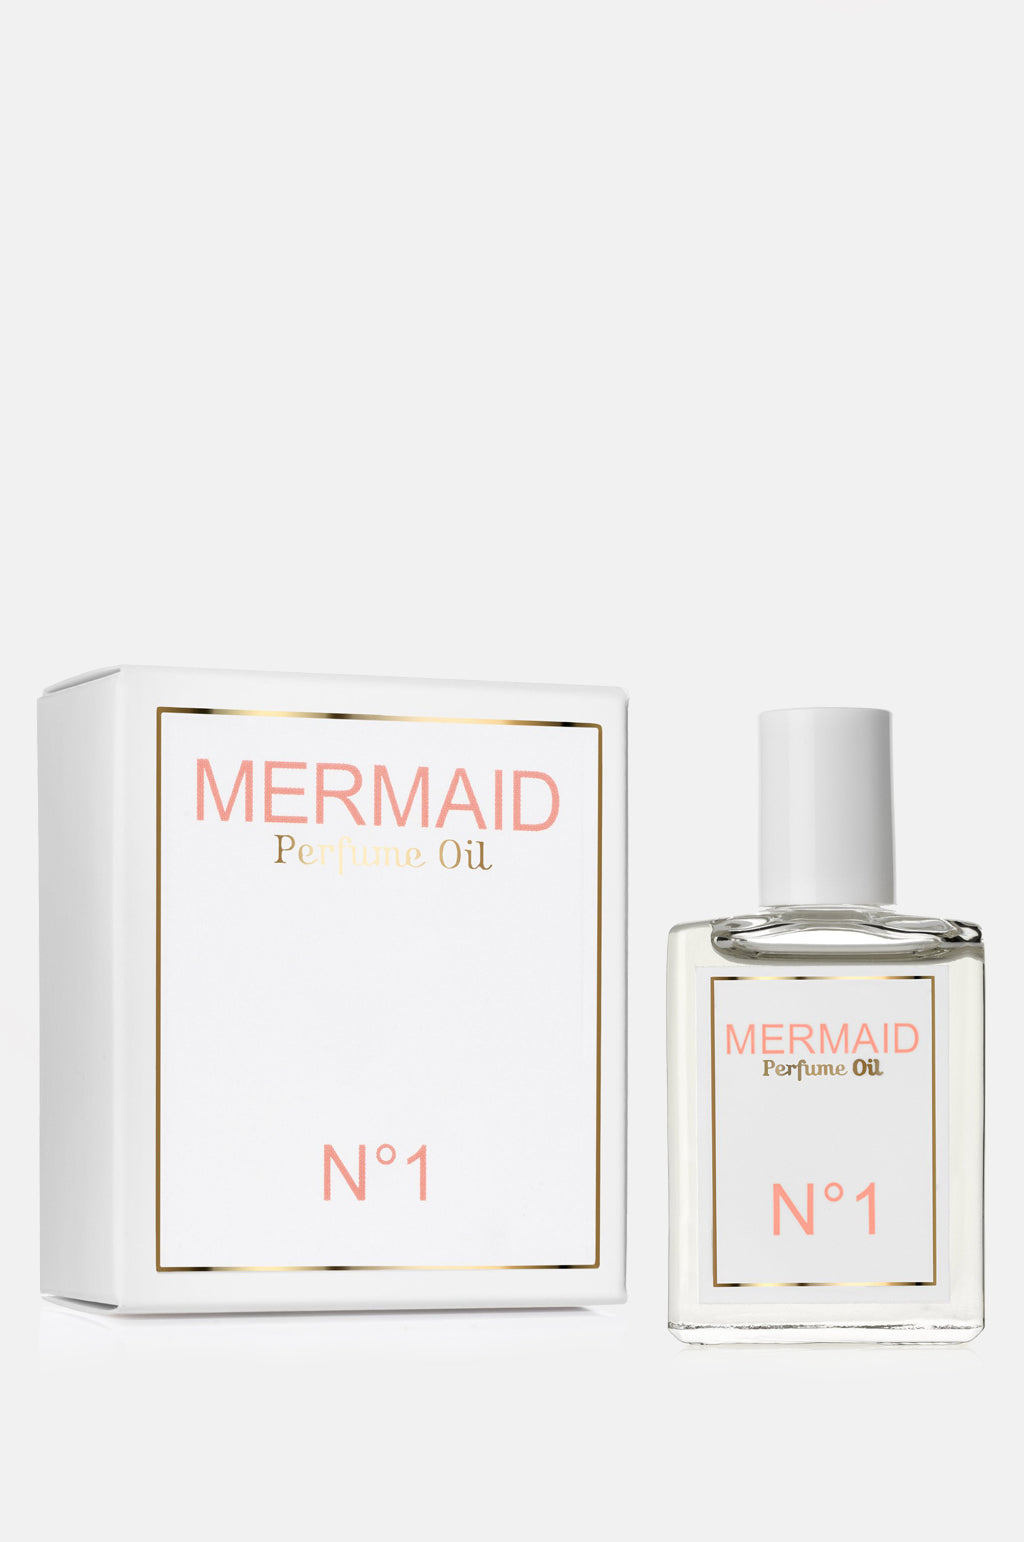 Mermaid No1 Perfume Oil Rollerball